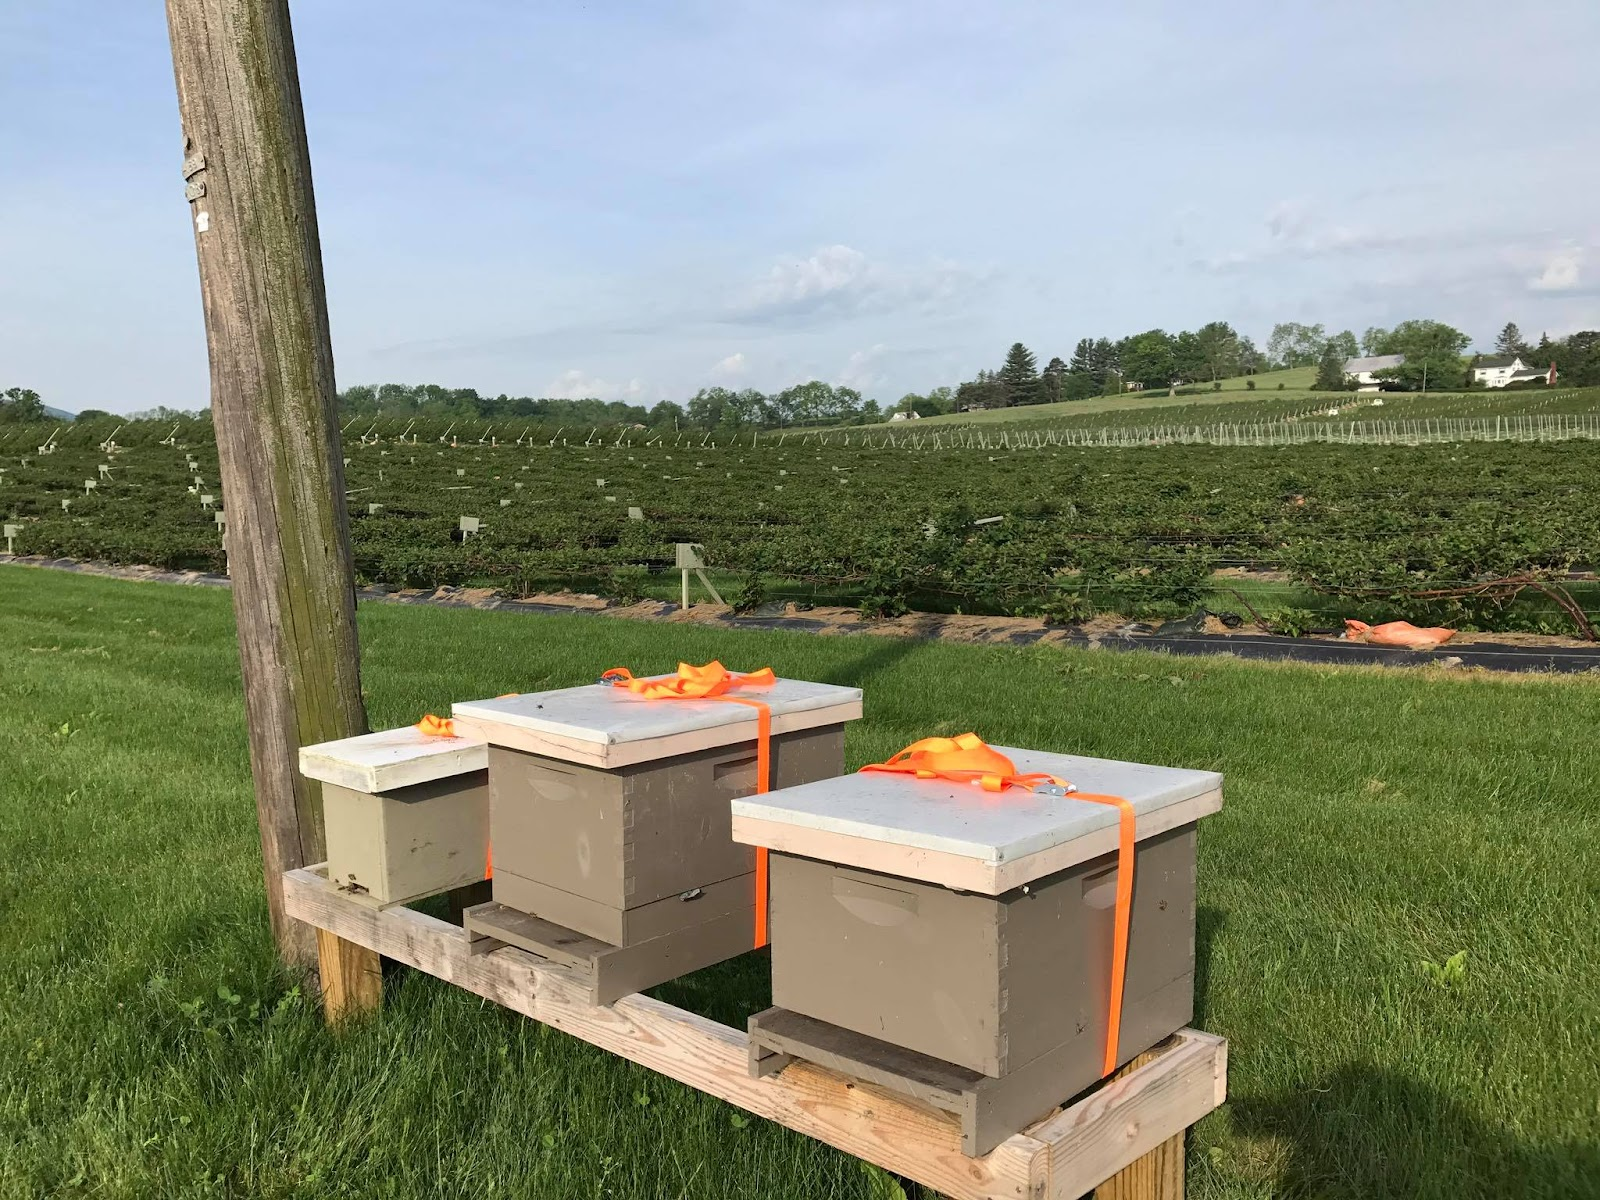 Huckle Bee Farms bee hives